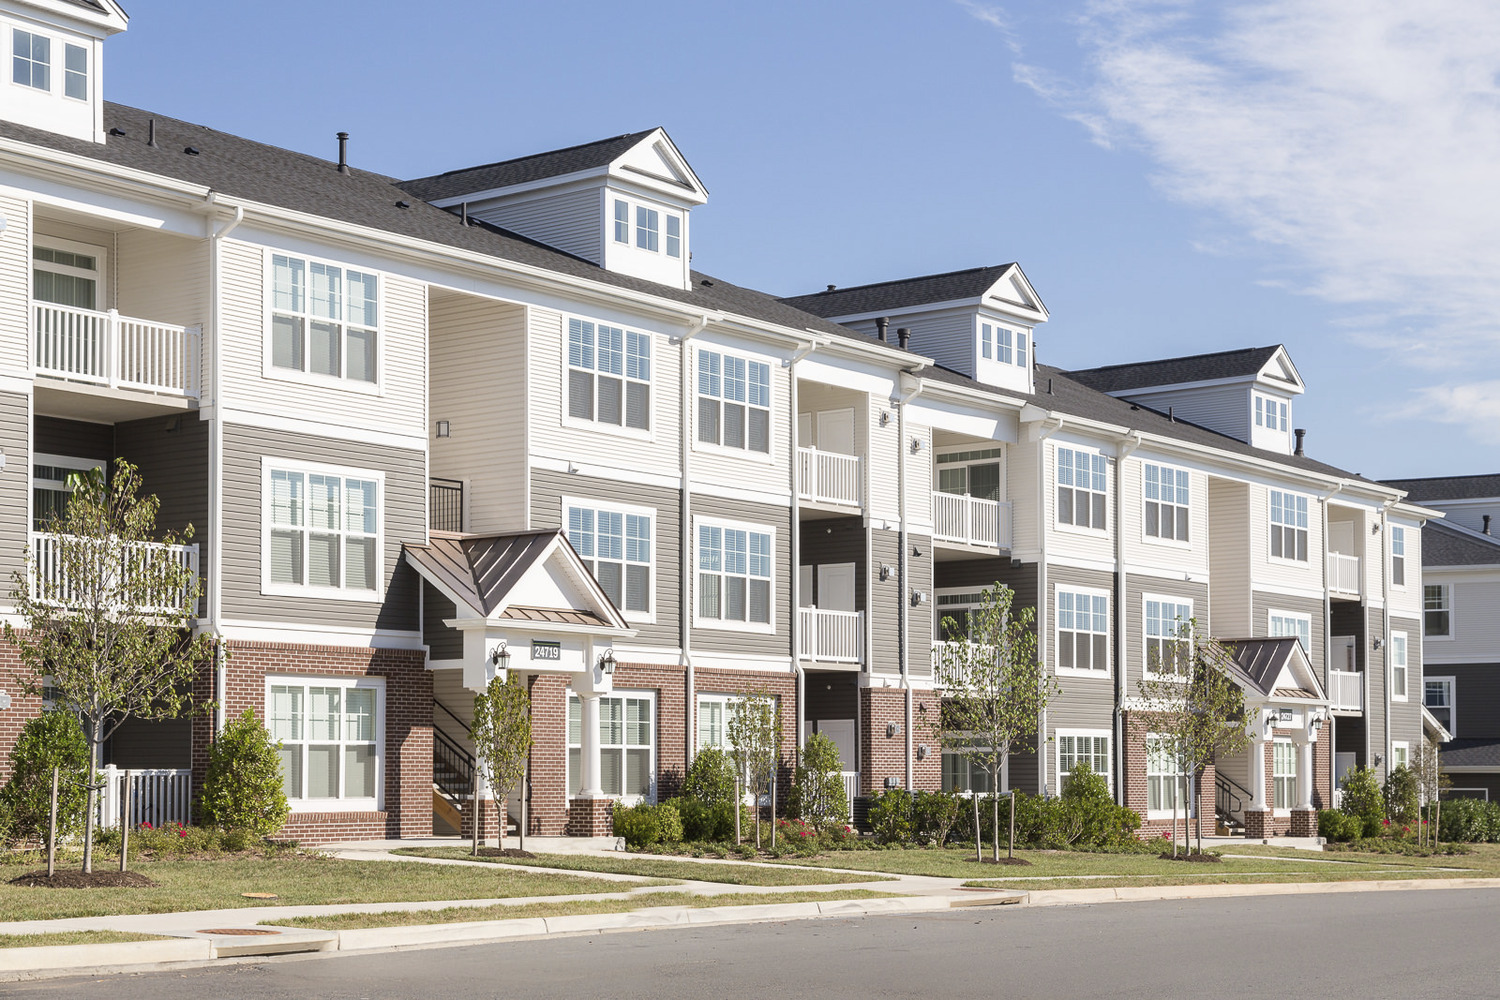 CBG builds The Elms at Arcola, a 248-Unit Garden-Style Multifamily Community in Sterling, VA